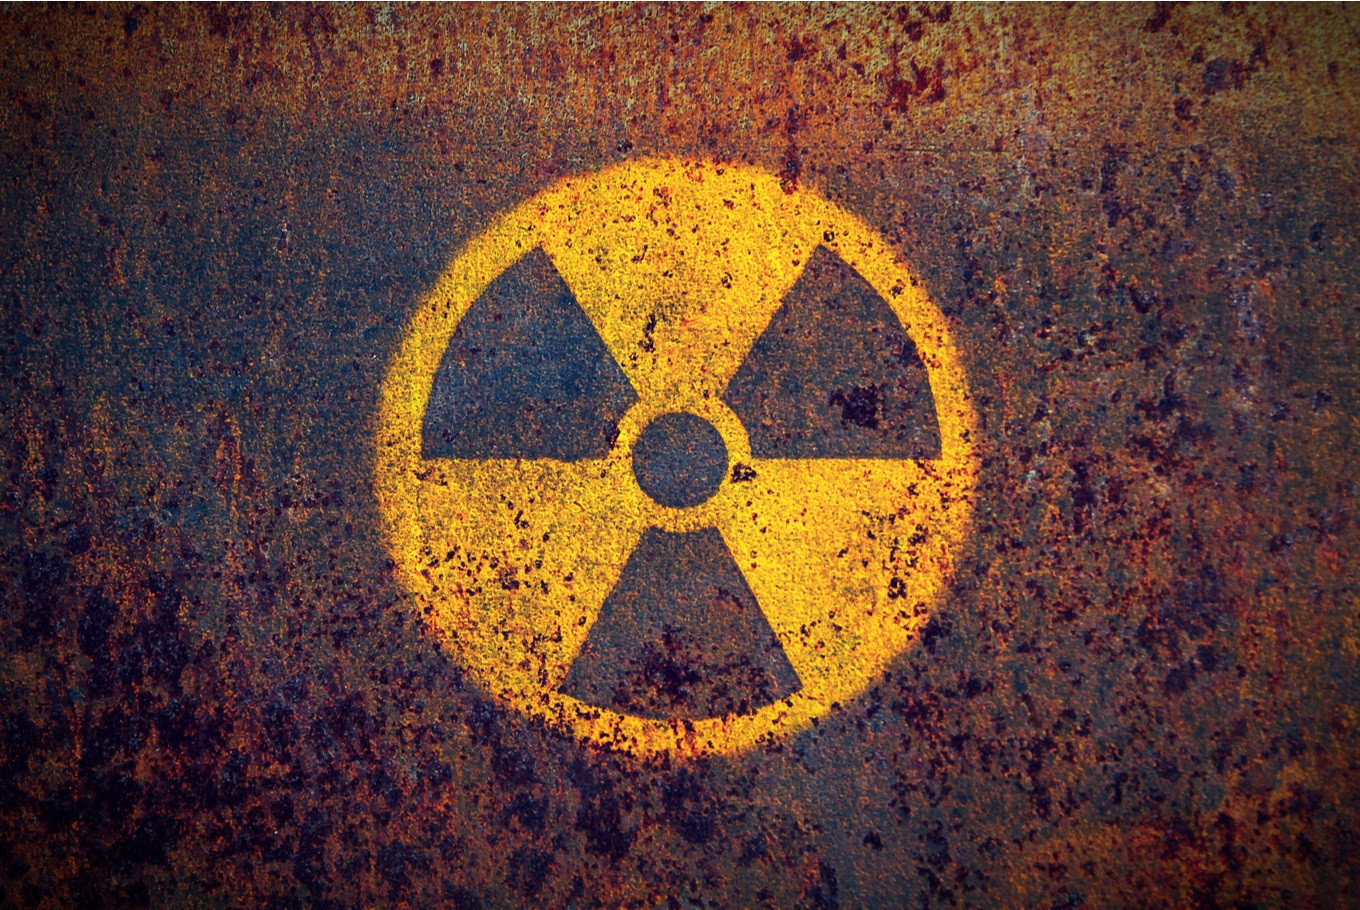 Explainer: How much radiation is harmful to health?